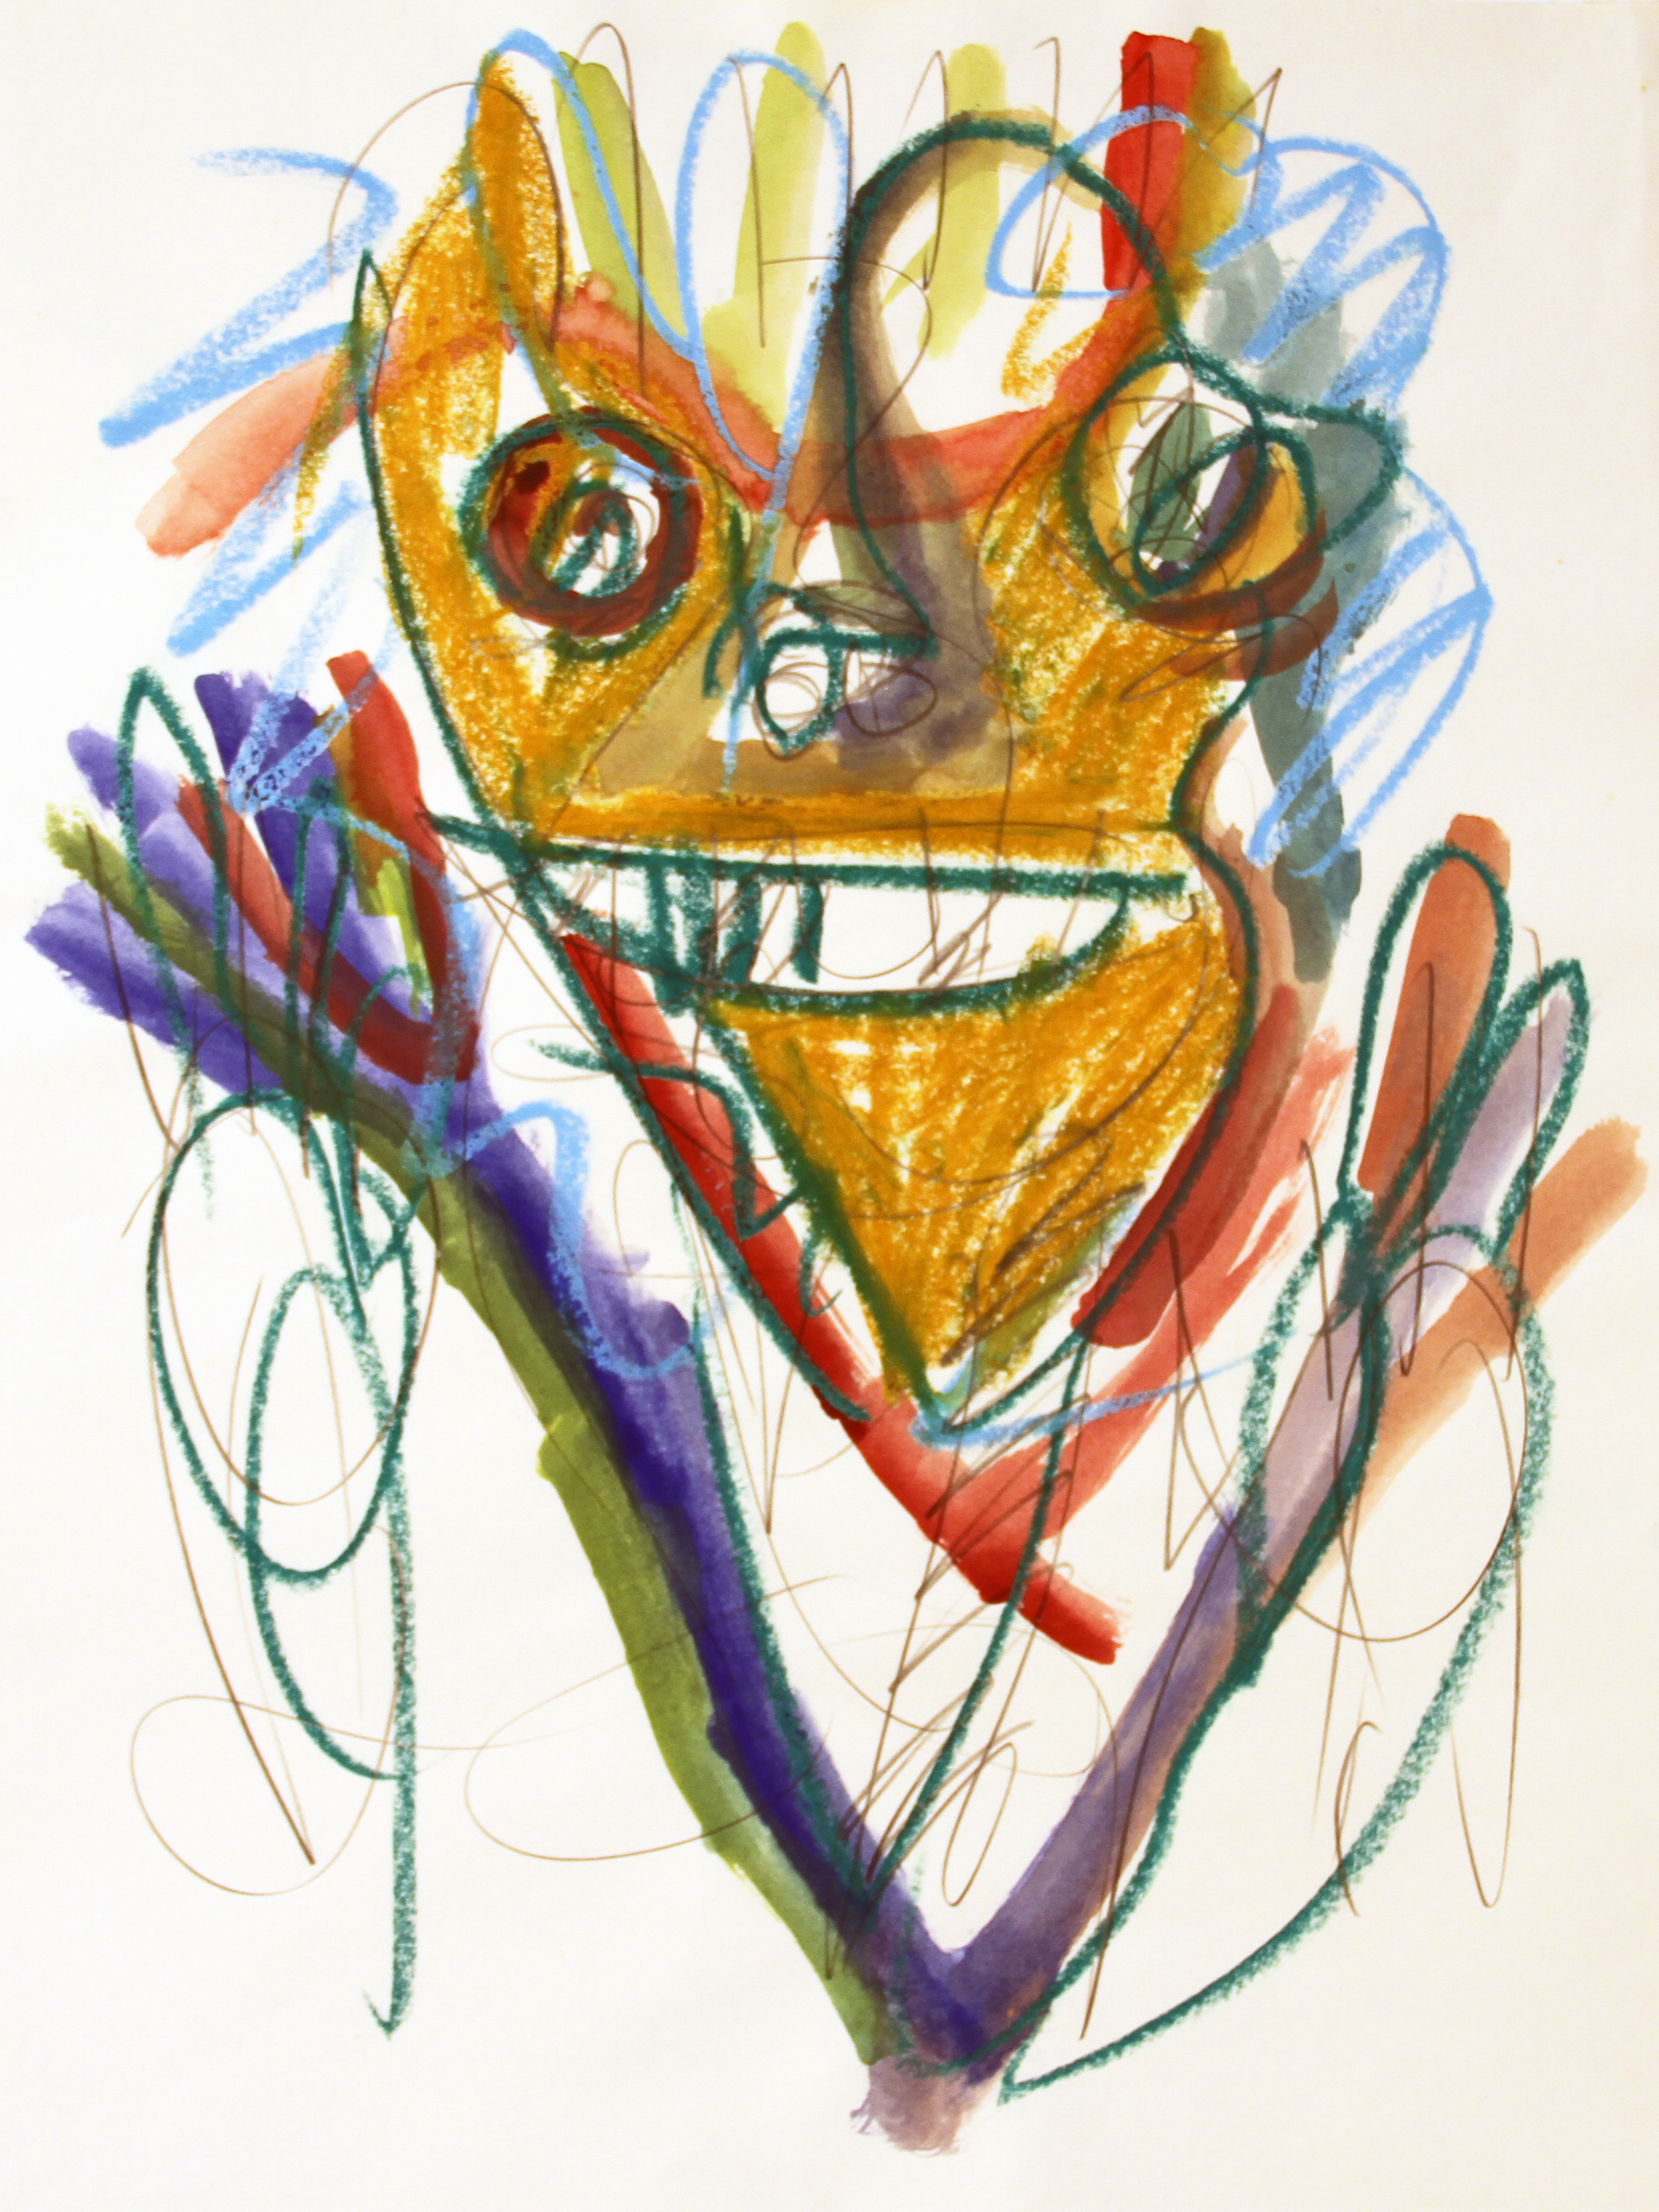 FROGMAN  Mixed Media on Paper 24 x 18 inches (61 x 46 cm)